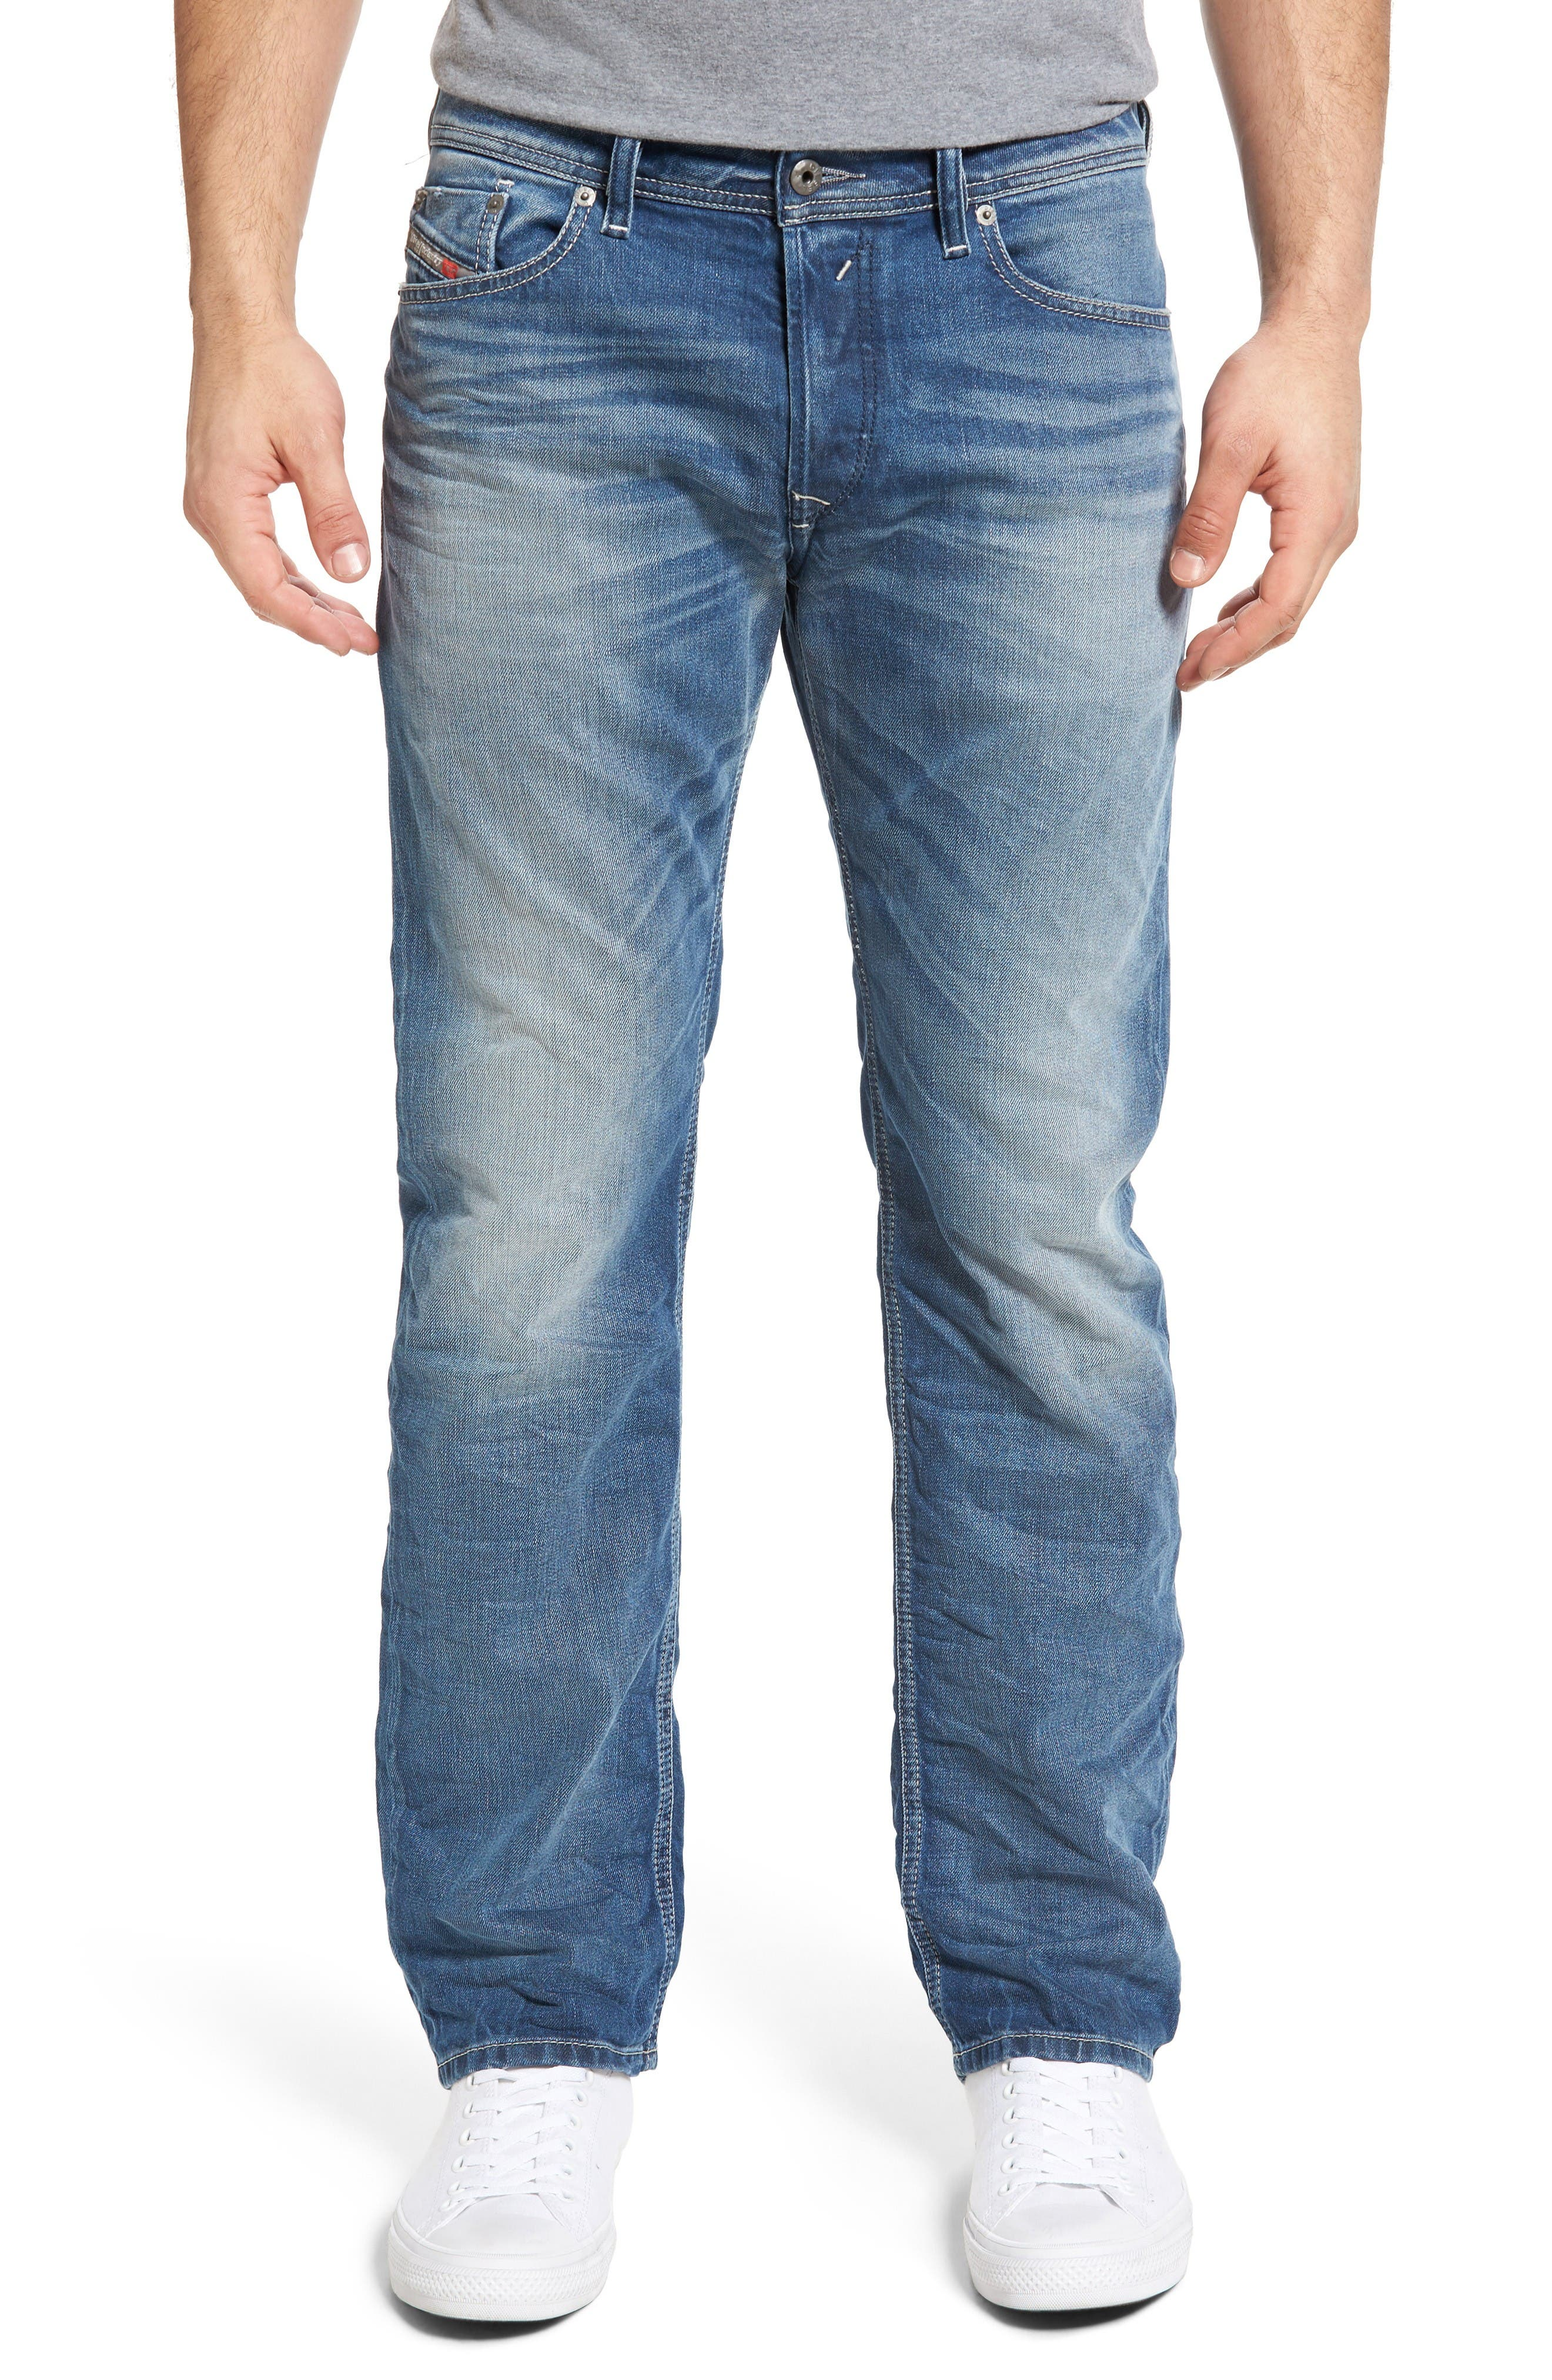 Waykee Straight Leg Jeans,                             Main thumbnail 1, color,                             084Df